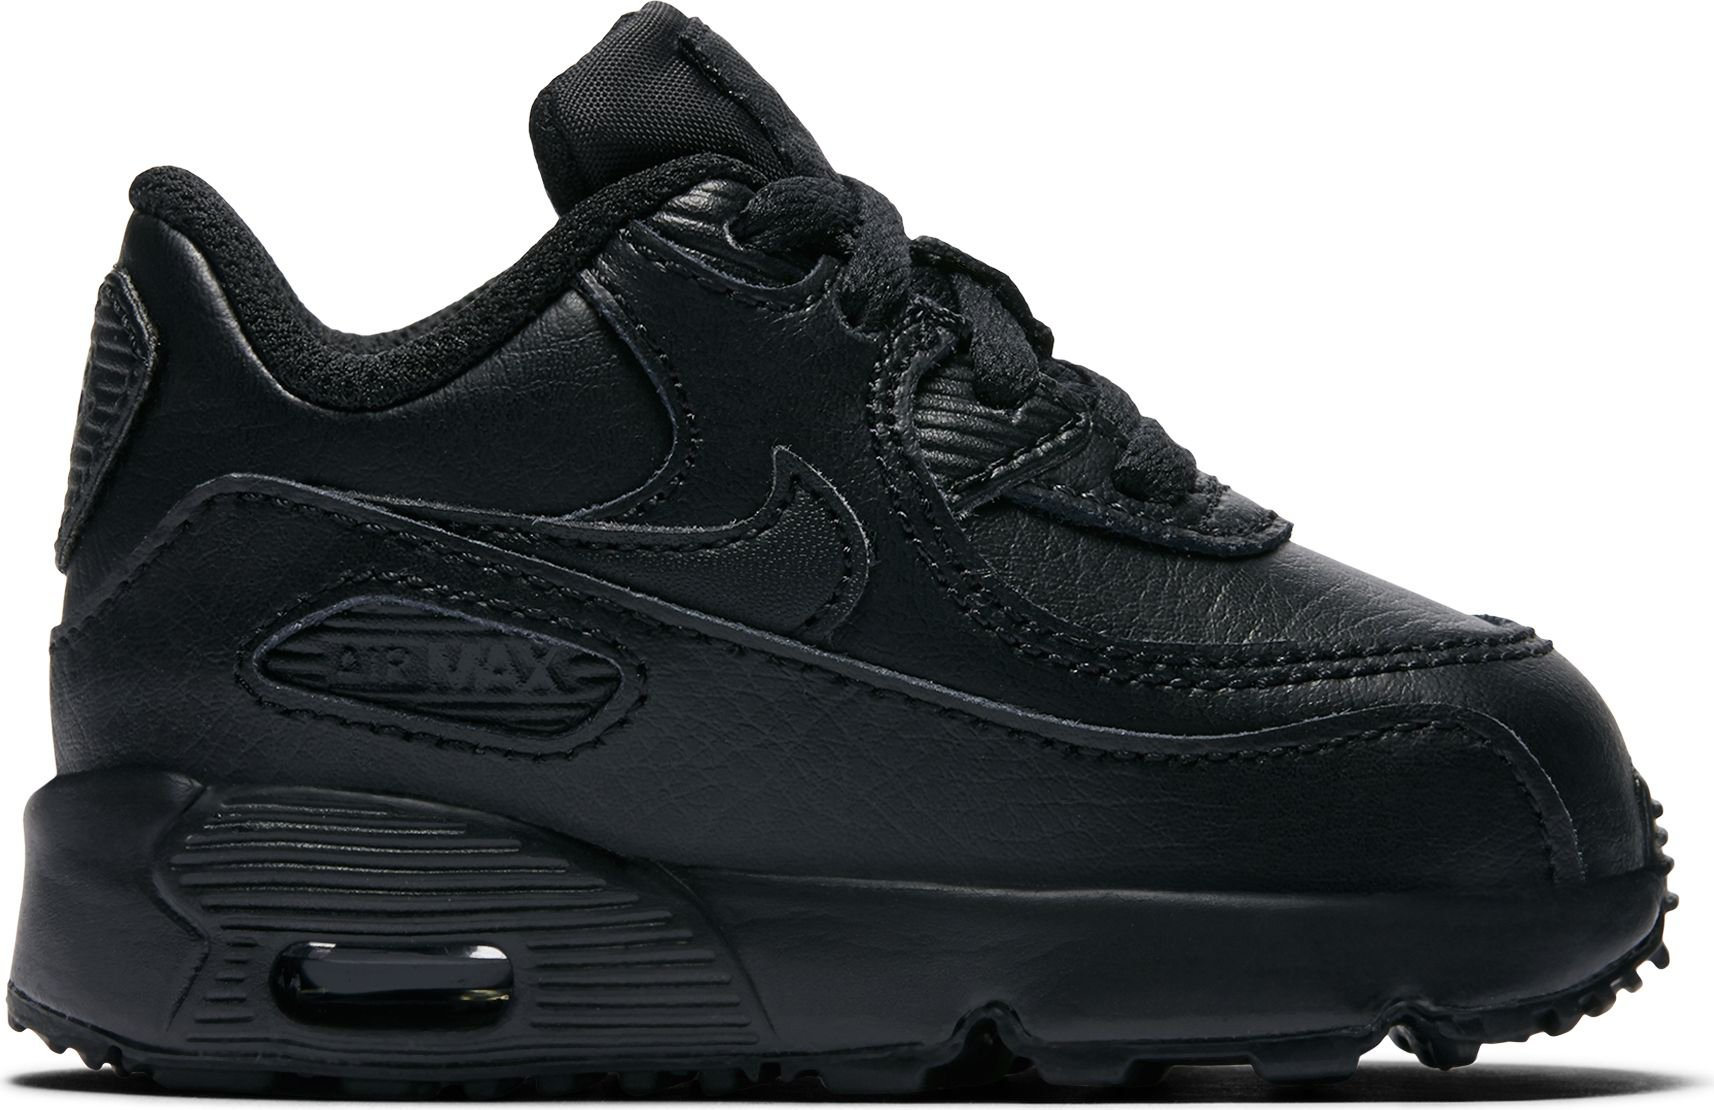 new product 20c0d b694e Galleon - NIKE Air Max 90 LTR (TD) Toddler Shoes BlackBlack 833416-001 (4  M US)